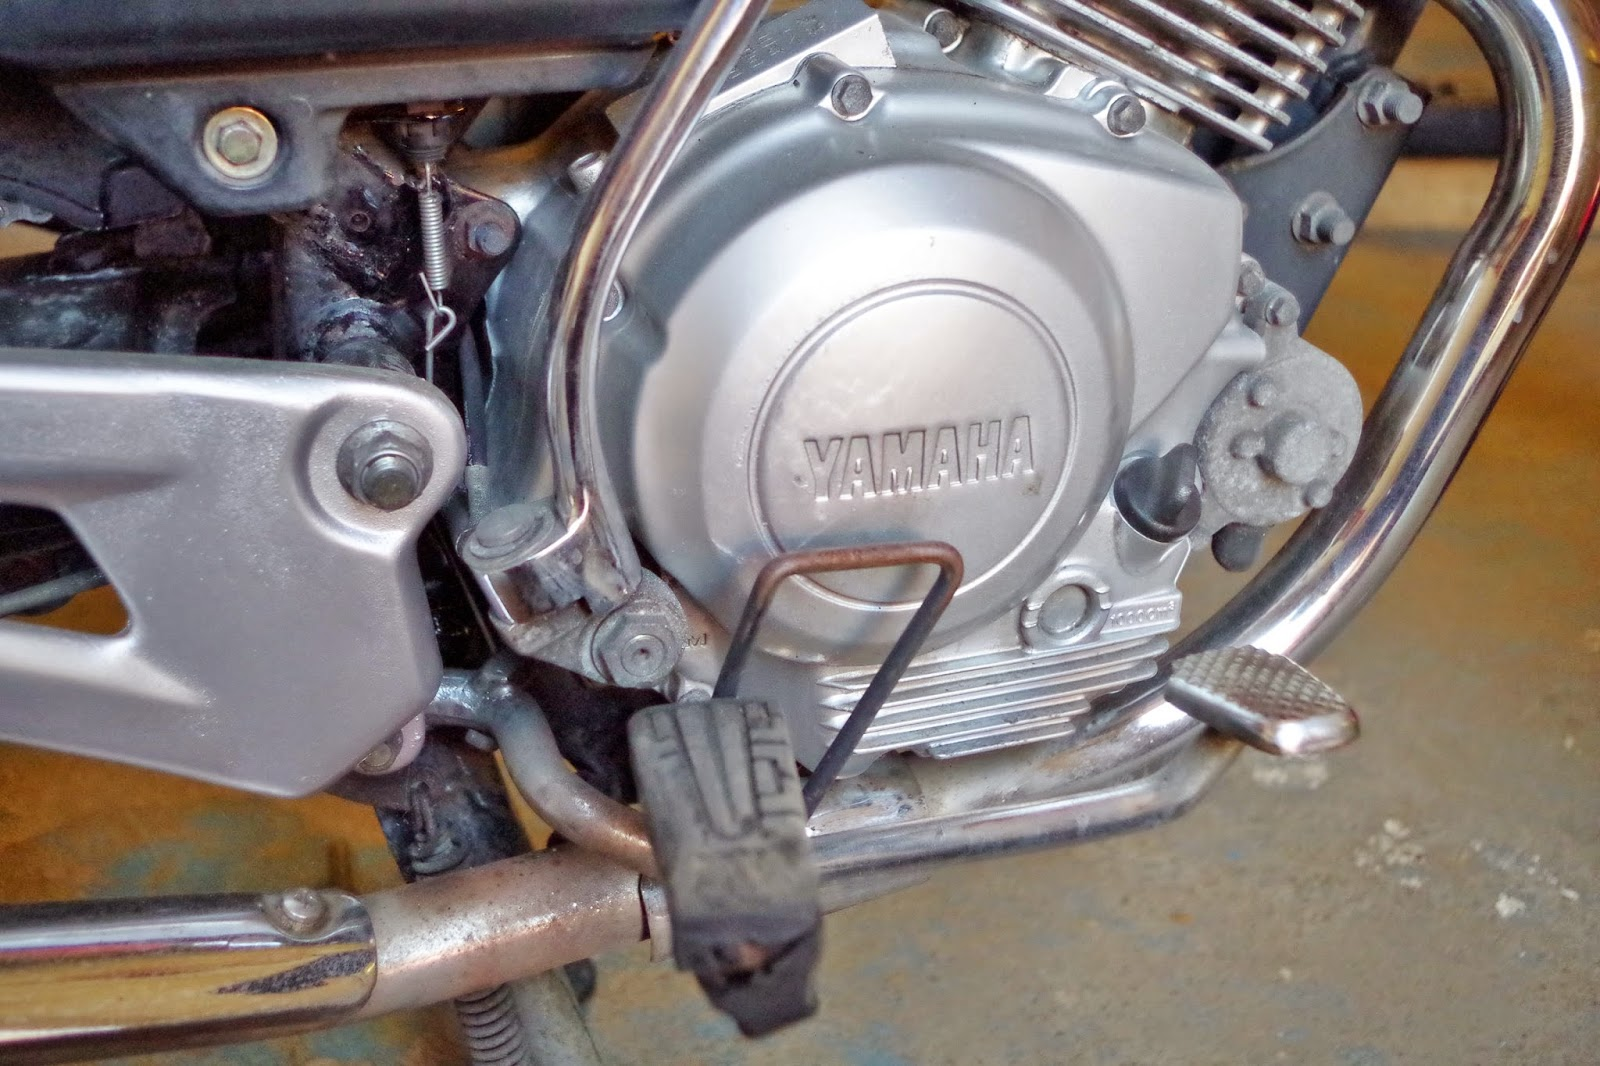 Yamaha YBR 125 Owner Blog : Yamaha YBR 125 Brake Problems